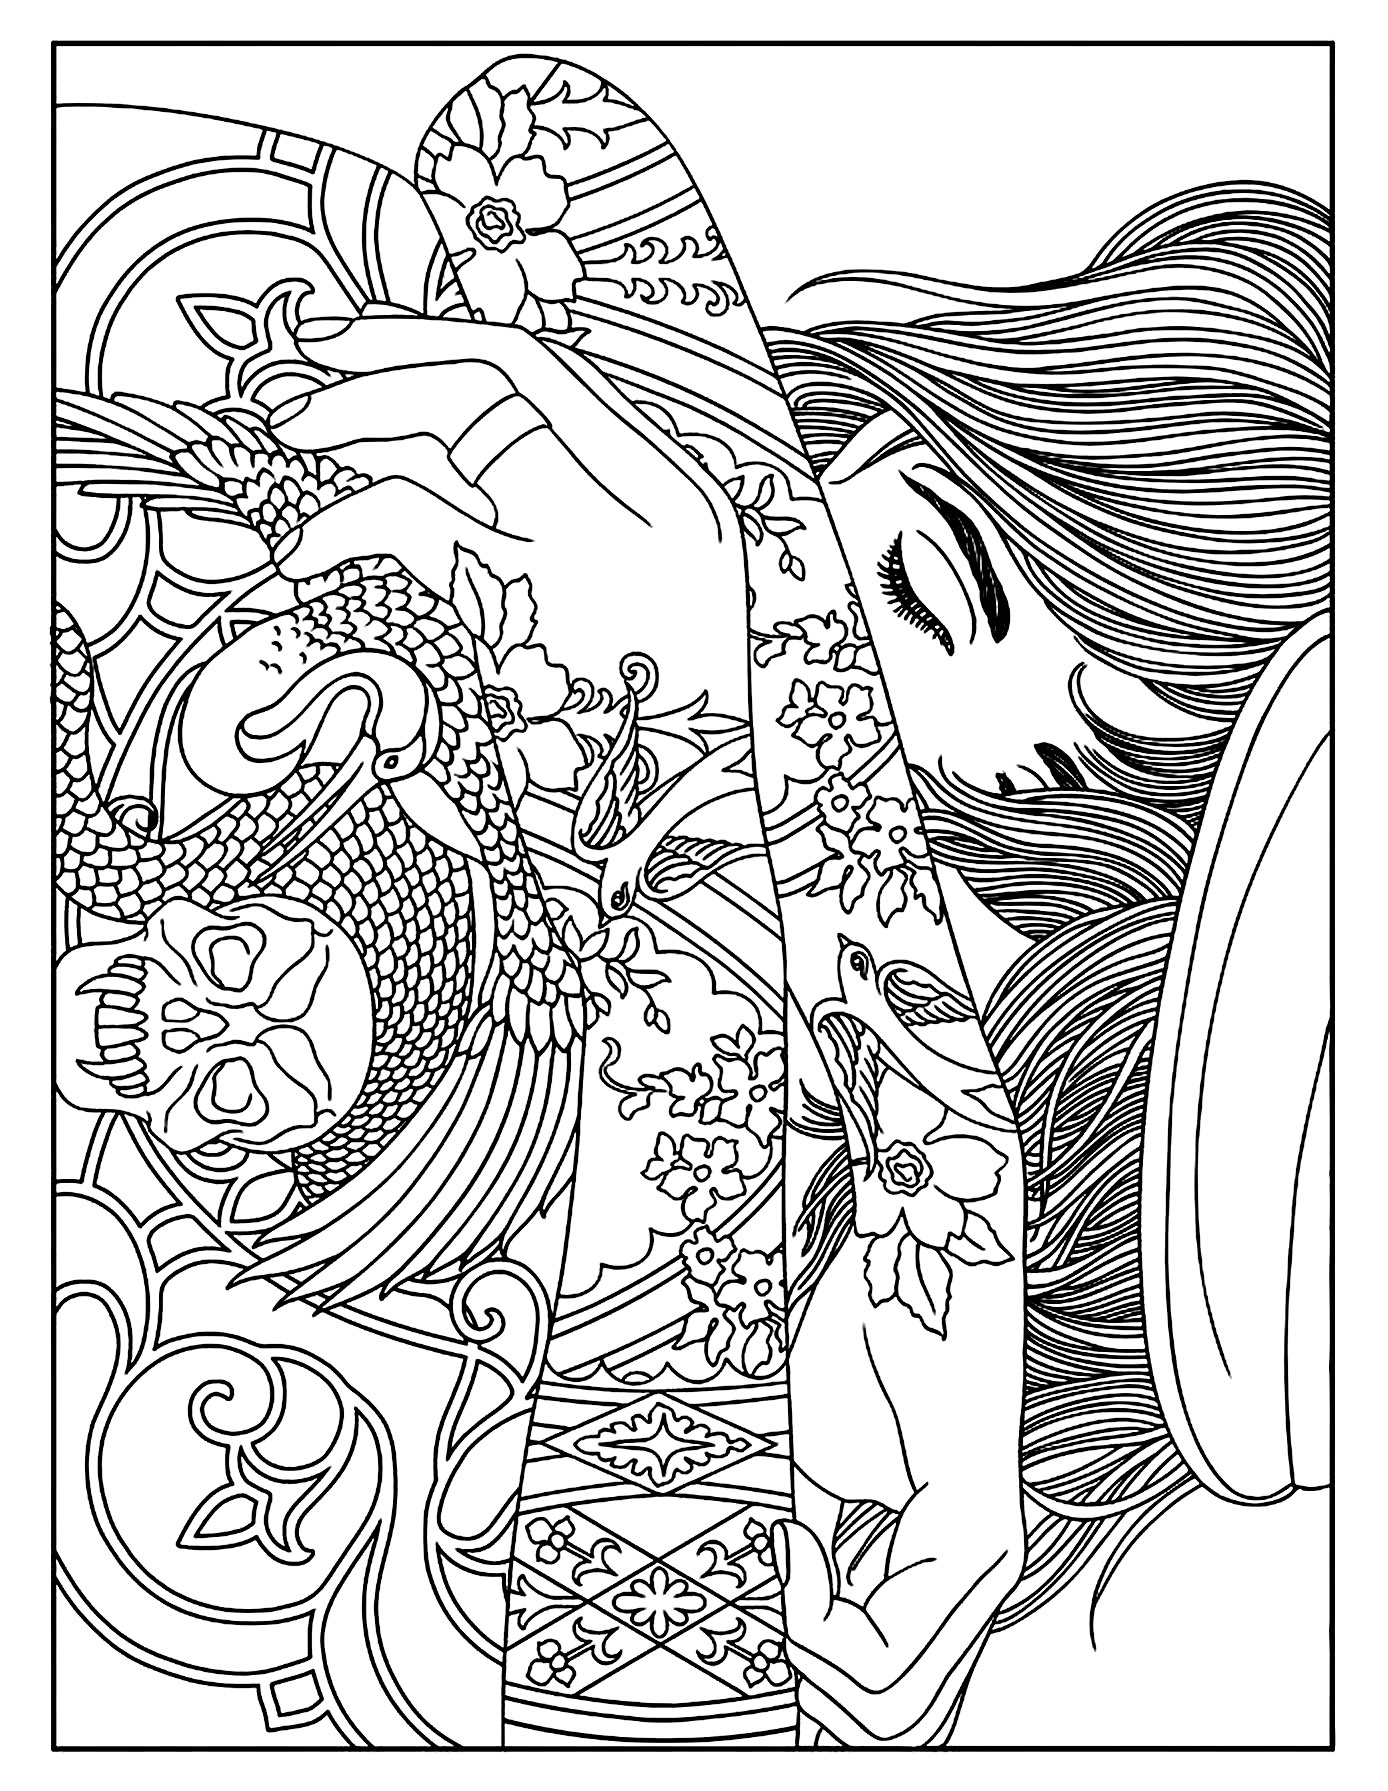 tattoo coloring pages printable tattoo coloring pages coloring pages to download and print pages printable tattoo coloring